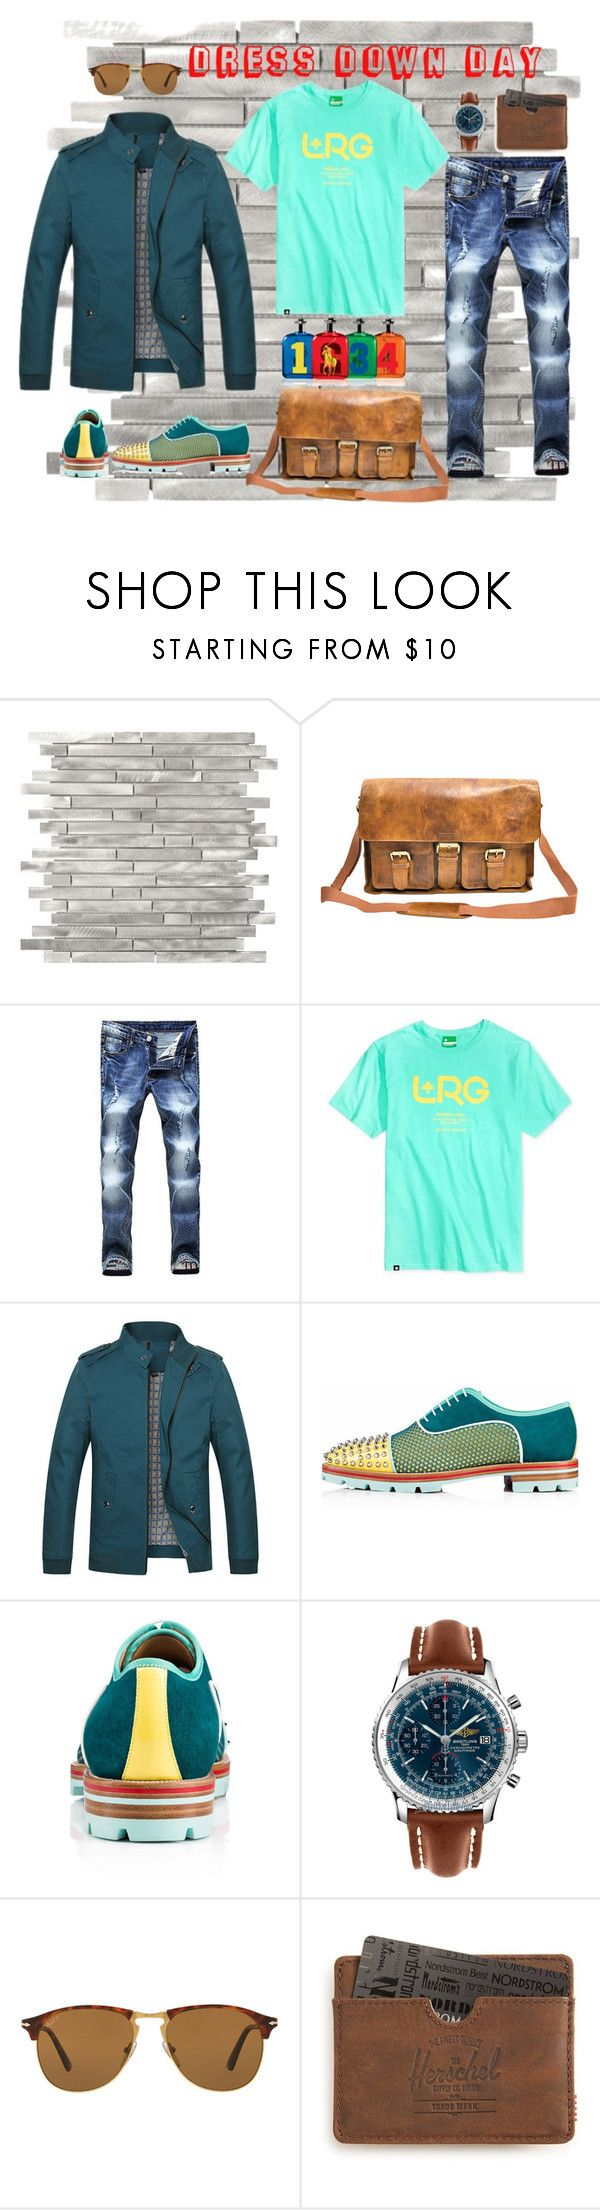 """""""Dress Down Day by D.Shaw"""" by b-signature-dshaw ❤ liked on Polyvore featuring Rawlings, LRG, Christian Louboutin, Breitling, Persol, Ralph Lauren, Herschel Supply Co., men's fashion, menswear and casual"""